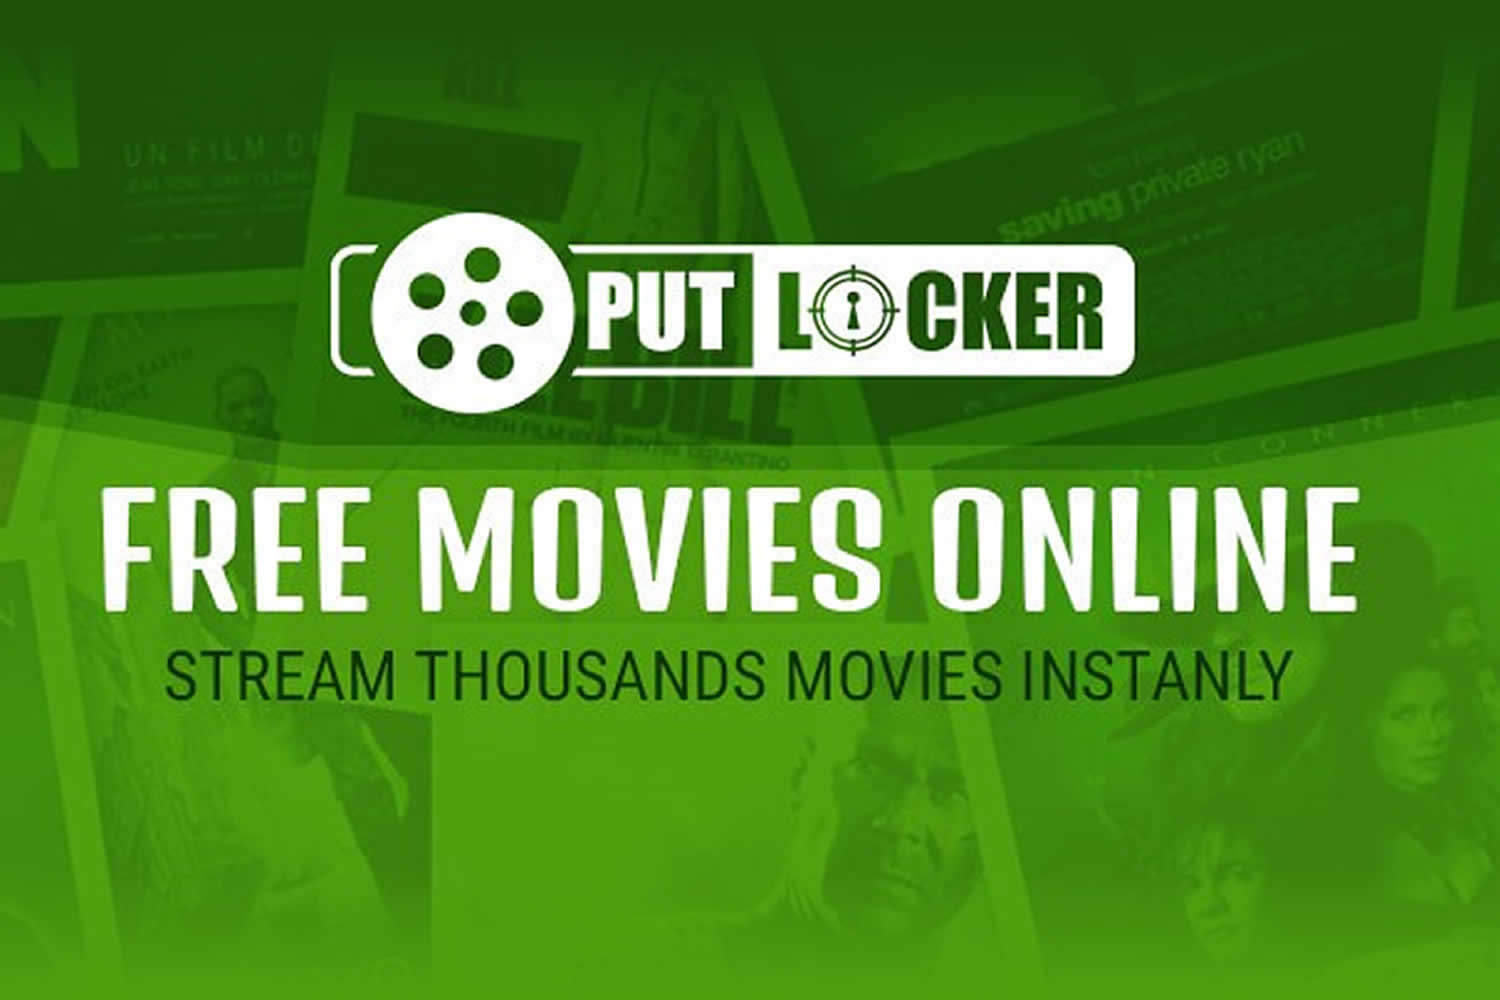 Watch Nøcken Putlocker Movies